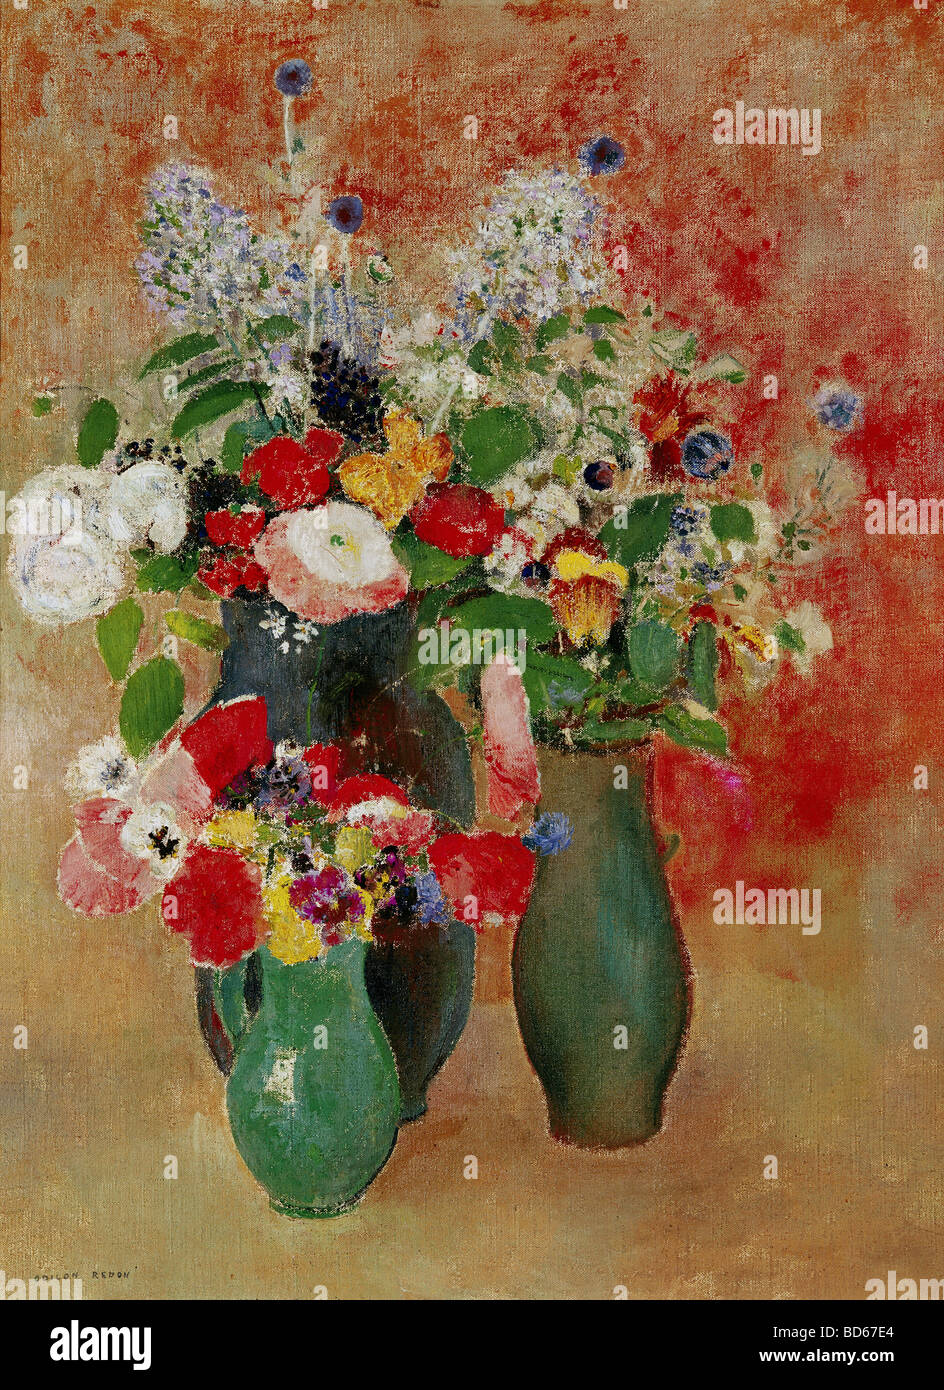 "fine arts, Redon, Odilon, (22.4.1840 - 6.7.1916), painting, ""flowers still life"", Von der Heydt-Museum, Wuppertal, Stock Photo"